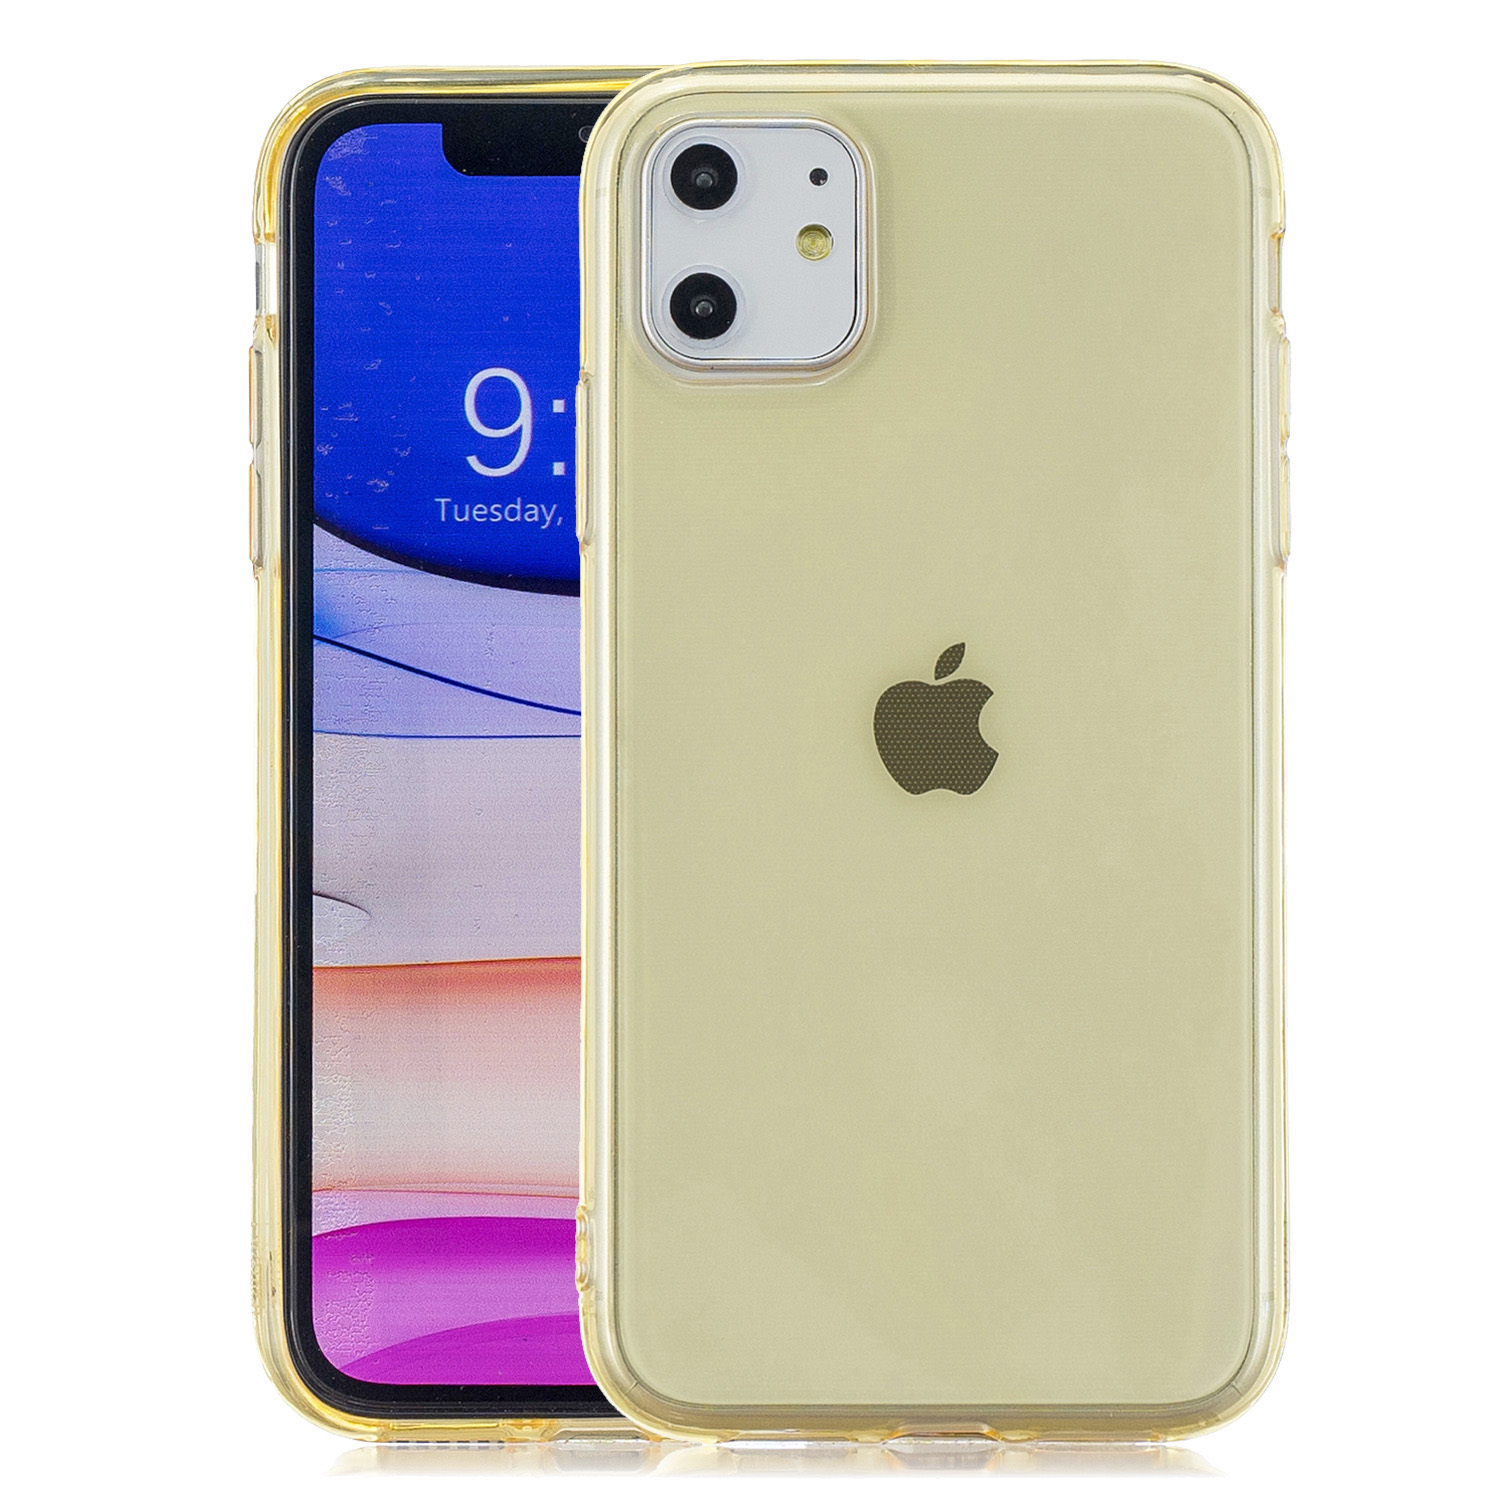 for iPhone 11 / 11 Pro / 11 Pro Max Clear Colorful TPU Back Cover Cellphone Case Shell Yellow